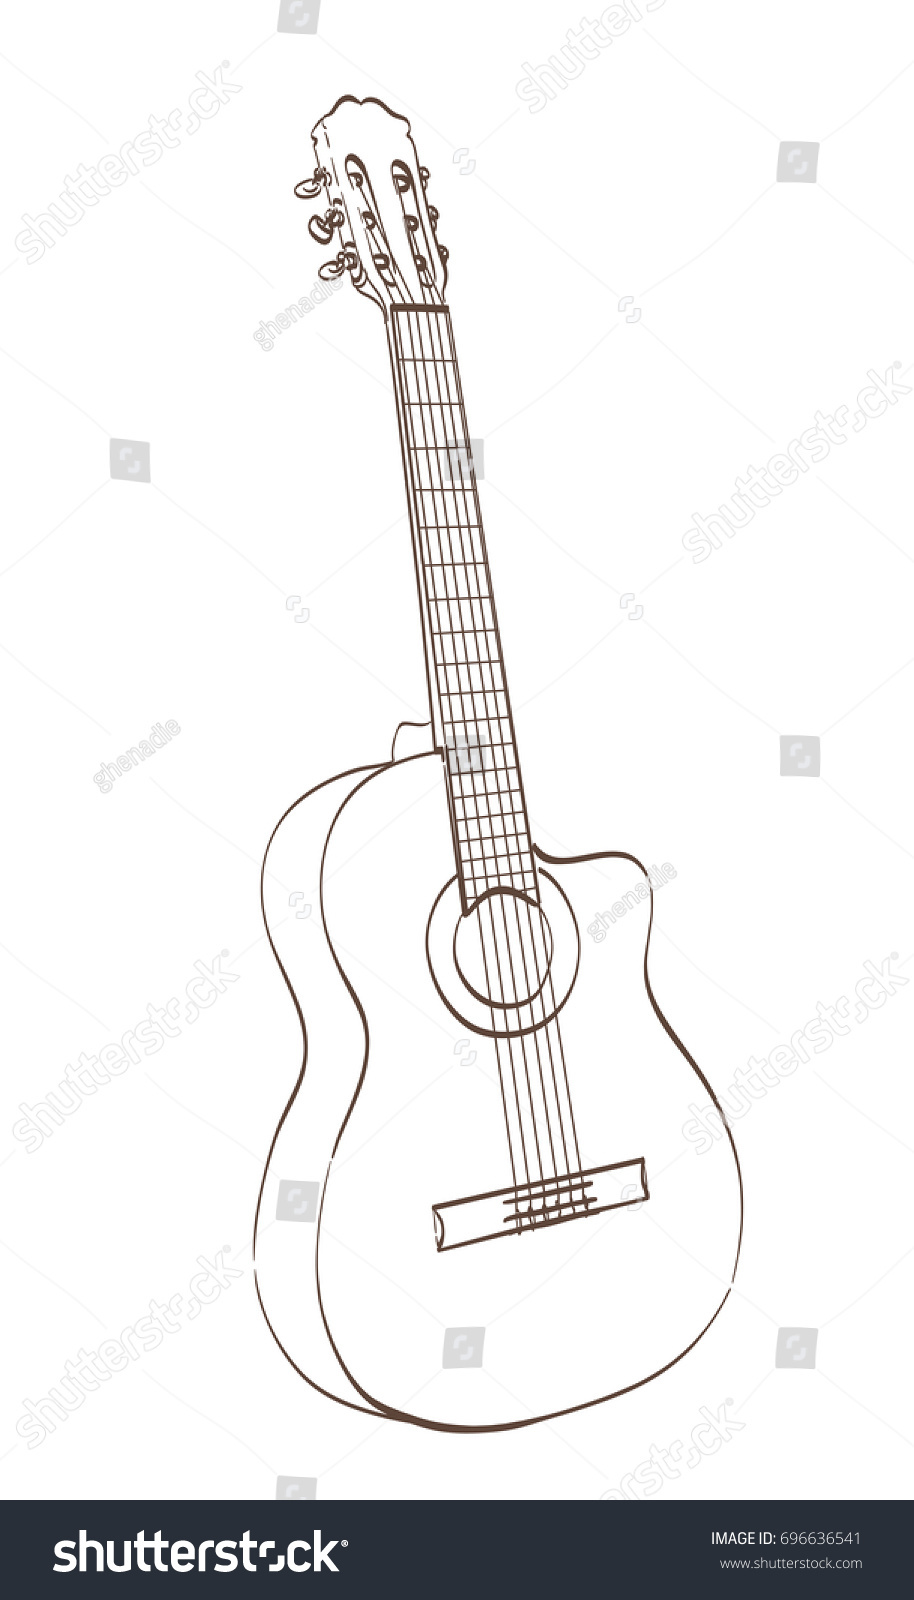 Classical Cutaway Guitar Outlines Drawing Vector Stock Vector